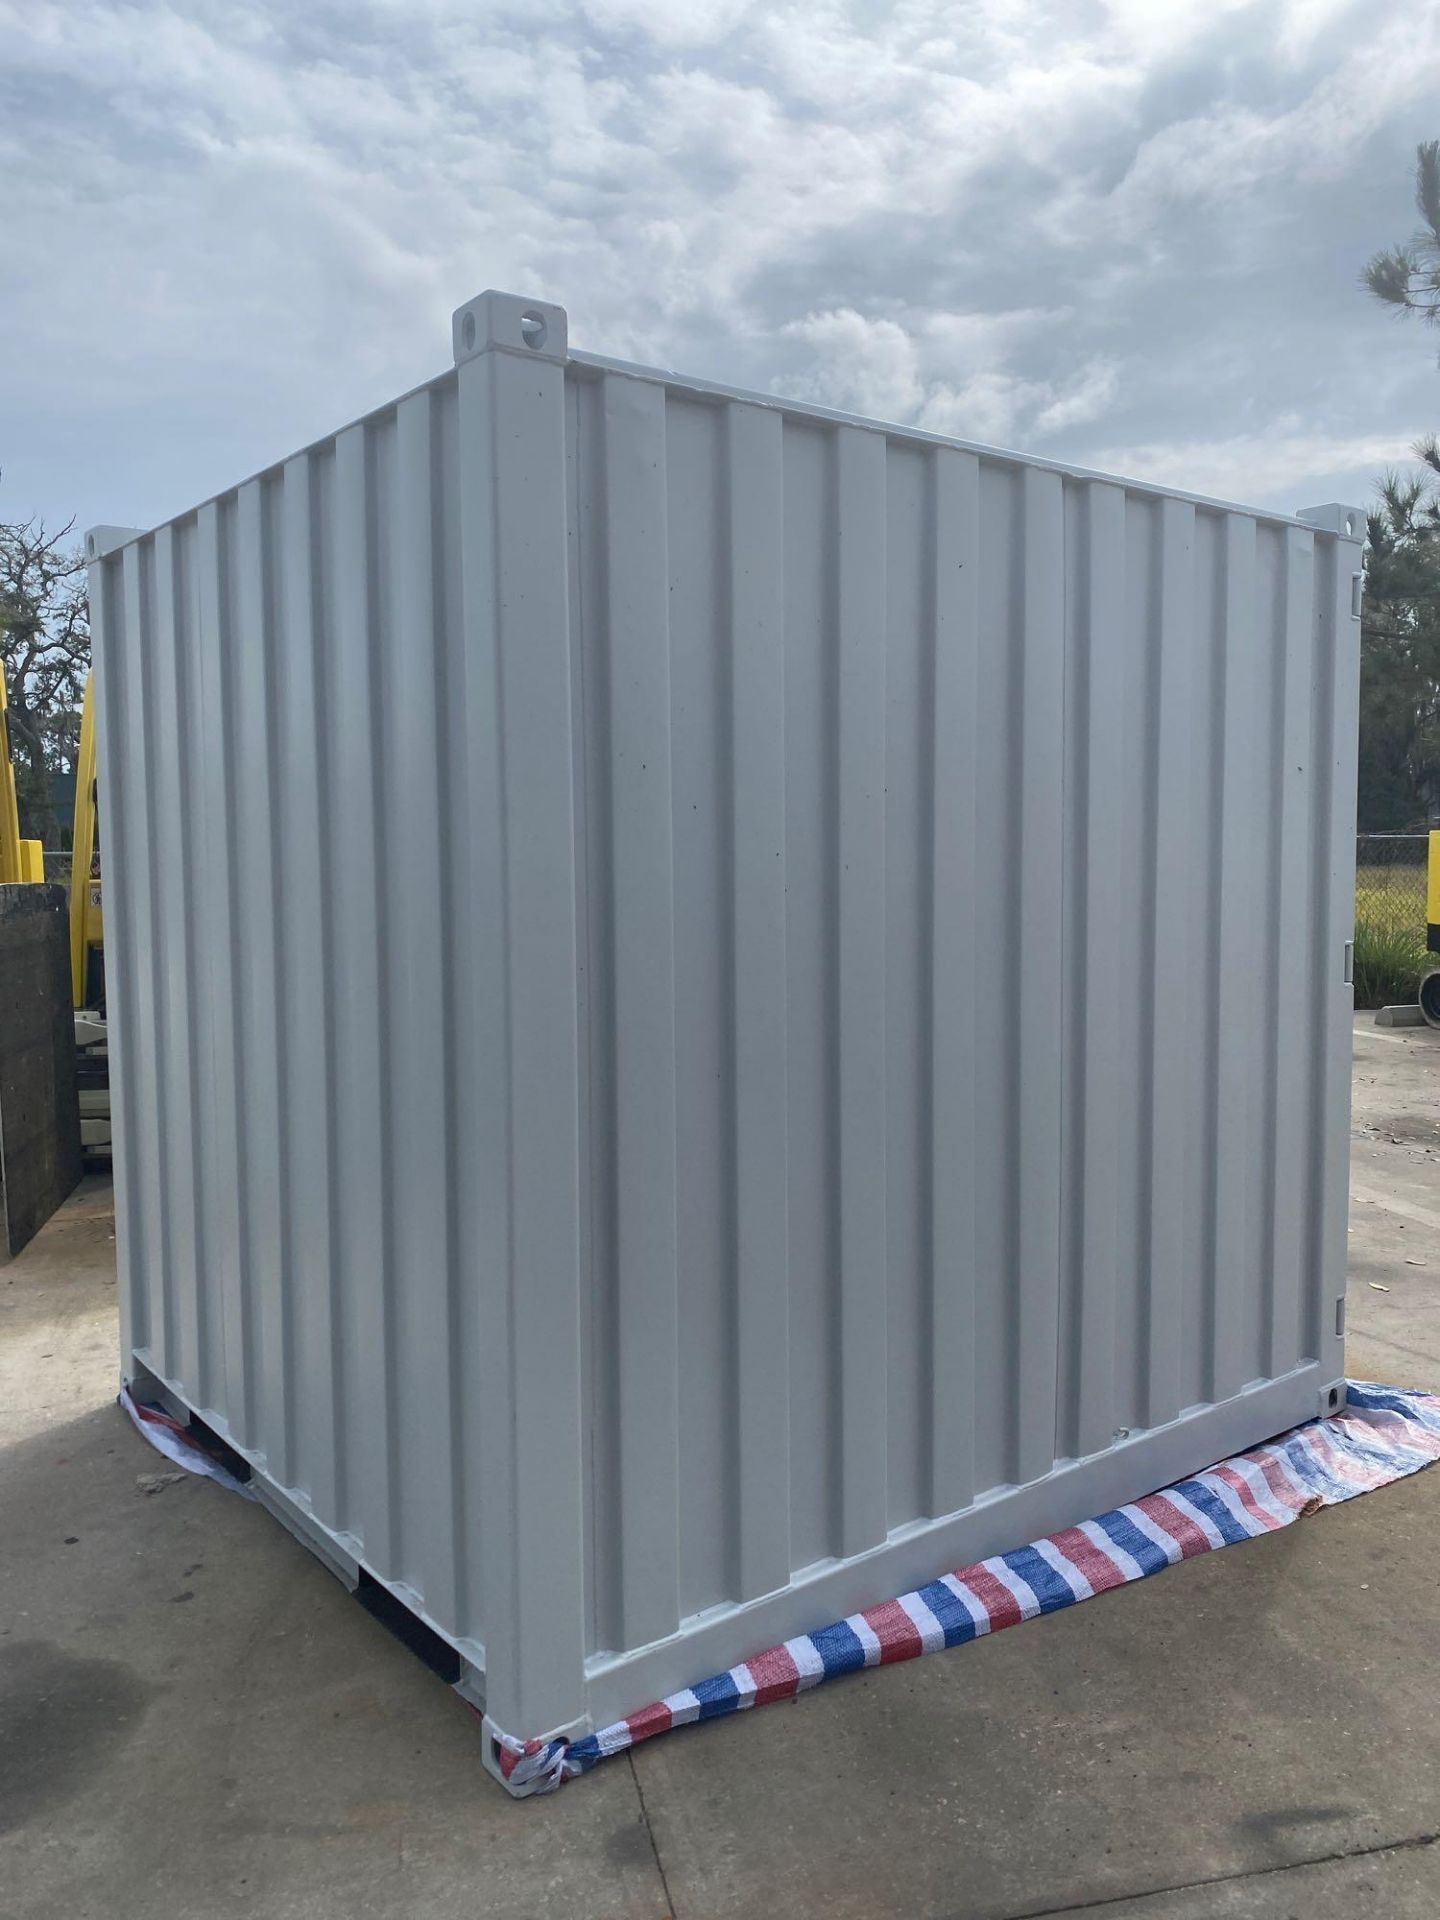 Lot 7A - NEW 7' MOBILE OFFICE/ STORAGE CONTAINER, BARN DOORS, SIDE DOOR, WINDOW, FORK POCKETS